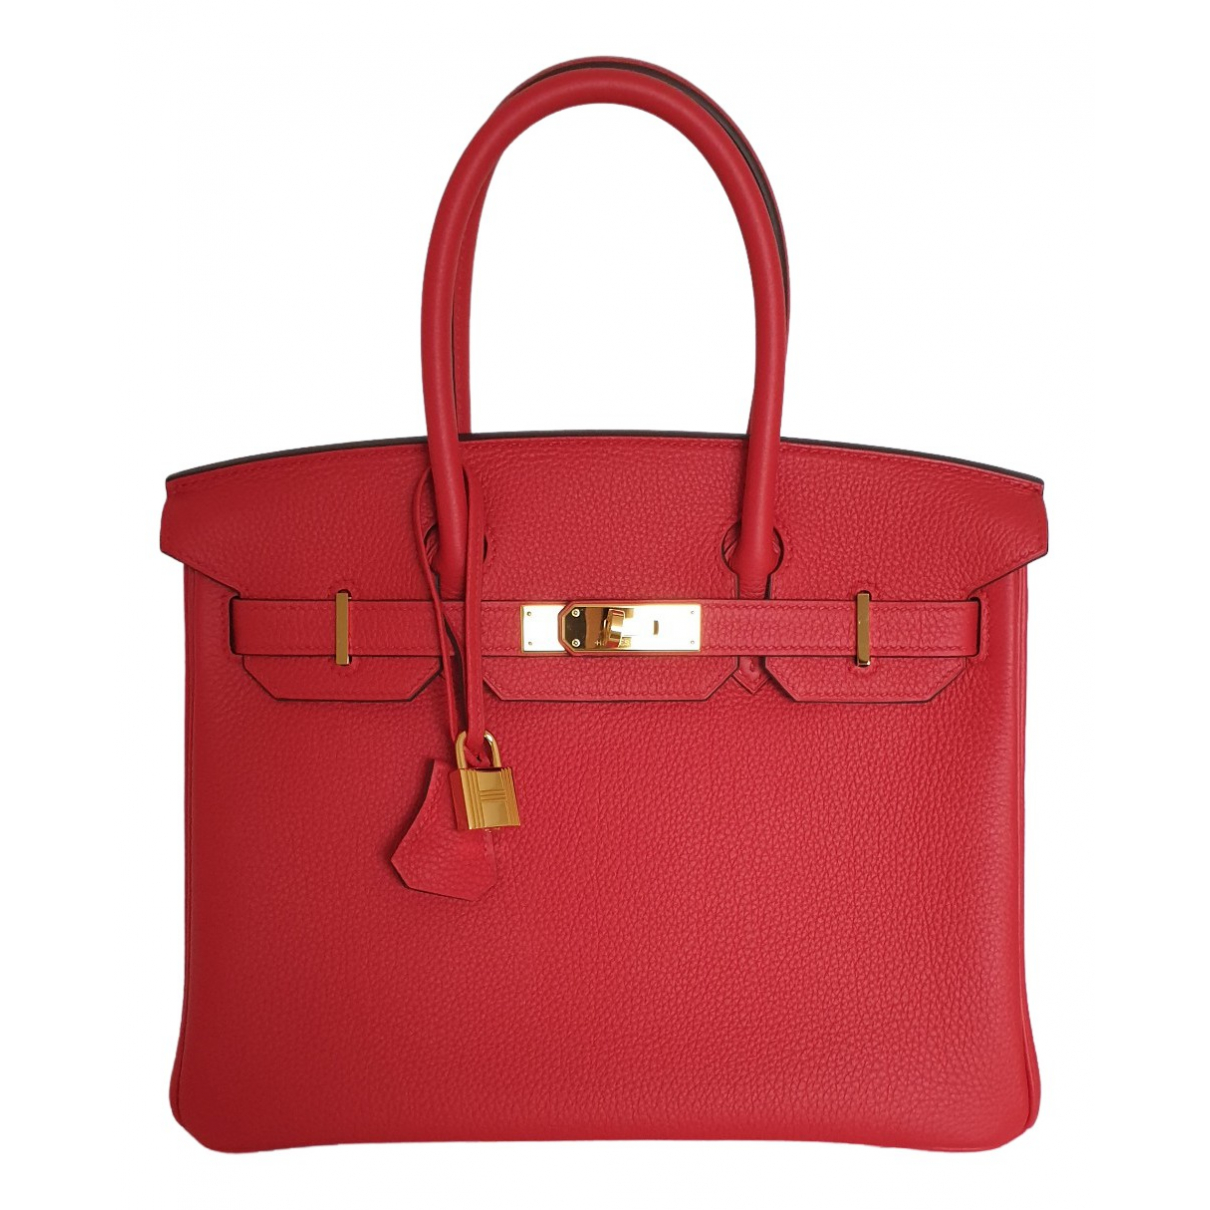 Hermès Birkin 30 Red Leather handbag for Women \N